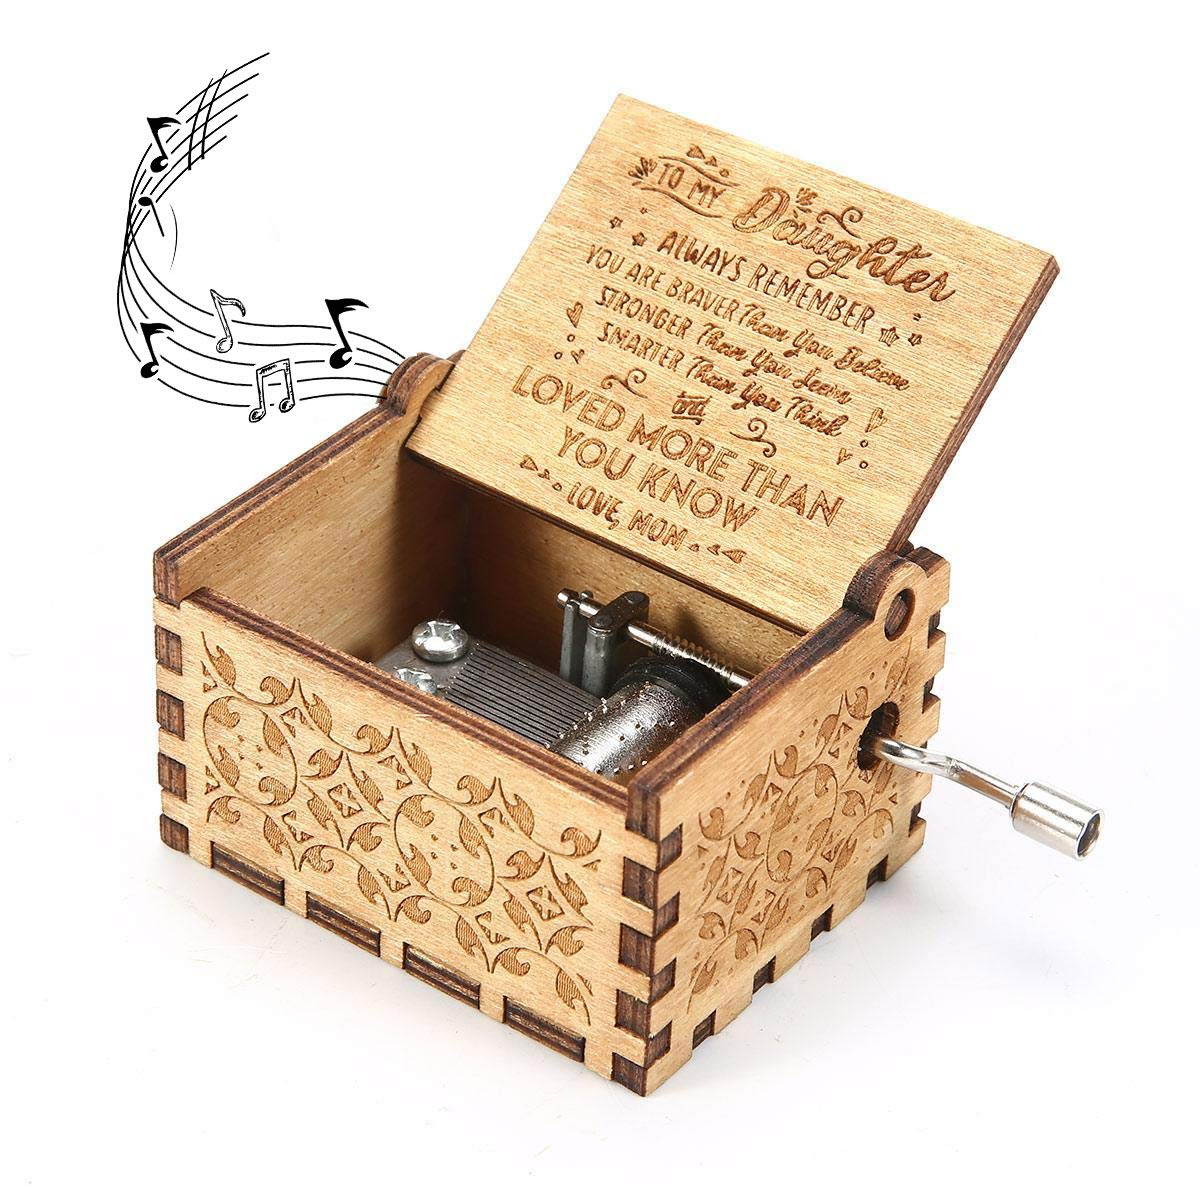 Kafete Music Box Hand Crank Engraved Musical Box-U R My Sunshine Mechanism Antique Vintage Personalizable Gift for Daughter from Mom(You are Stronger Than You Seem) by Kafete